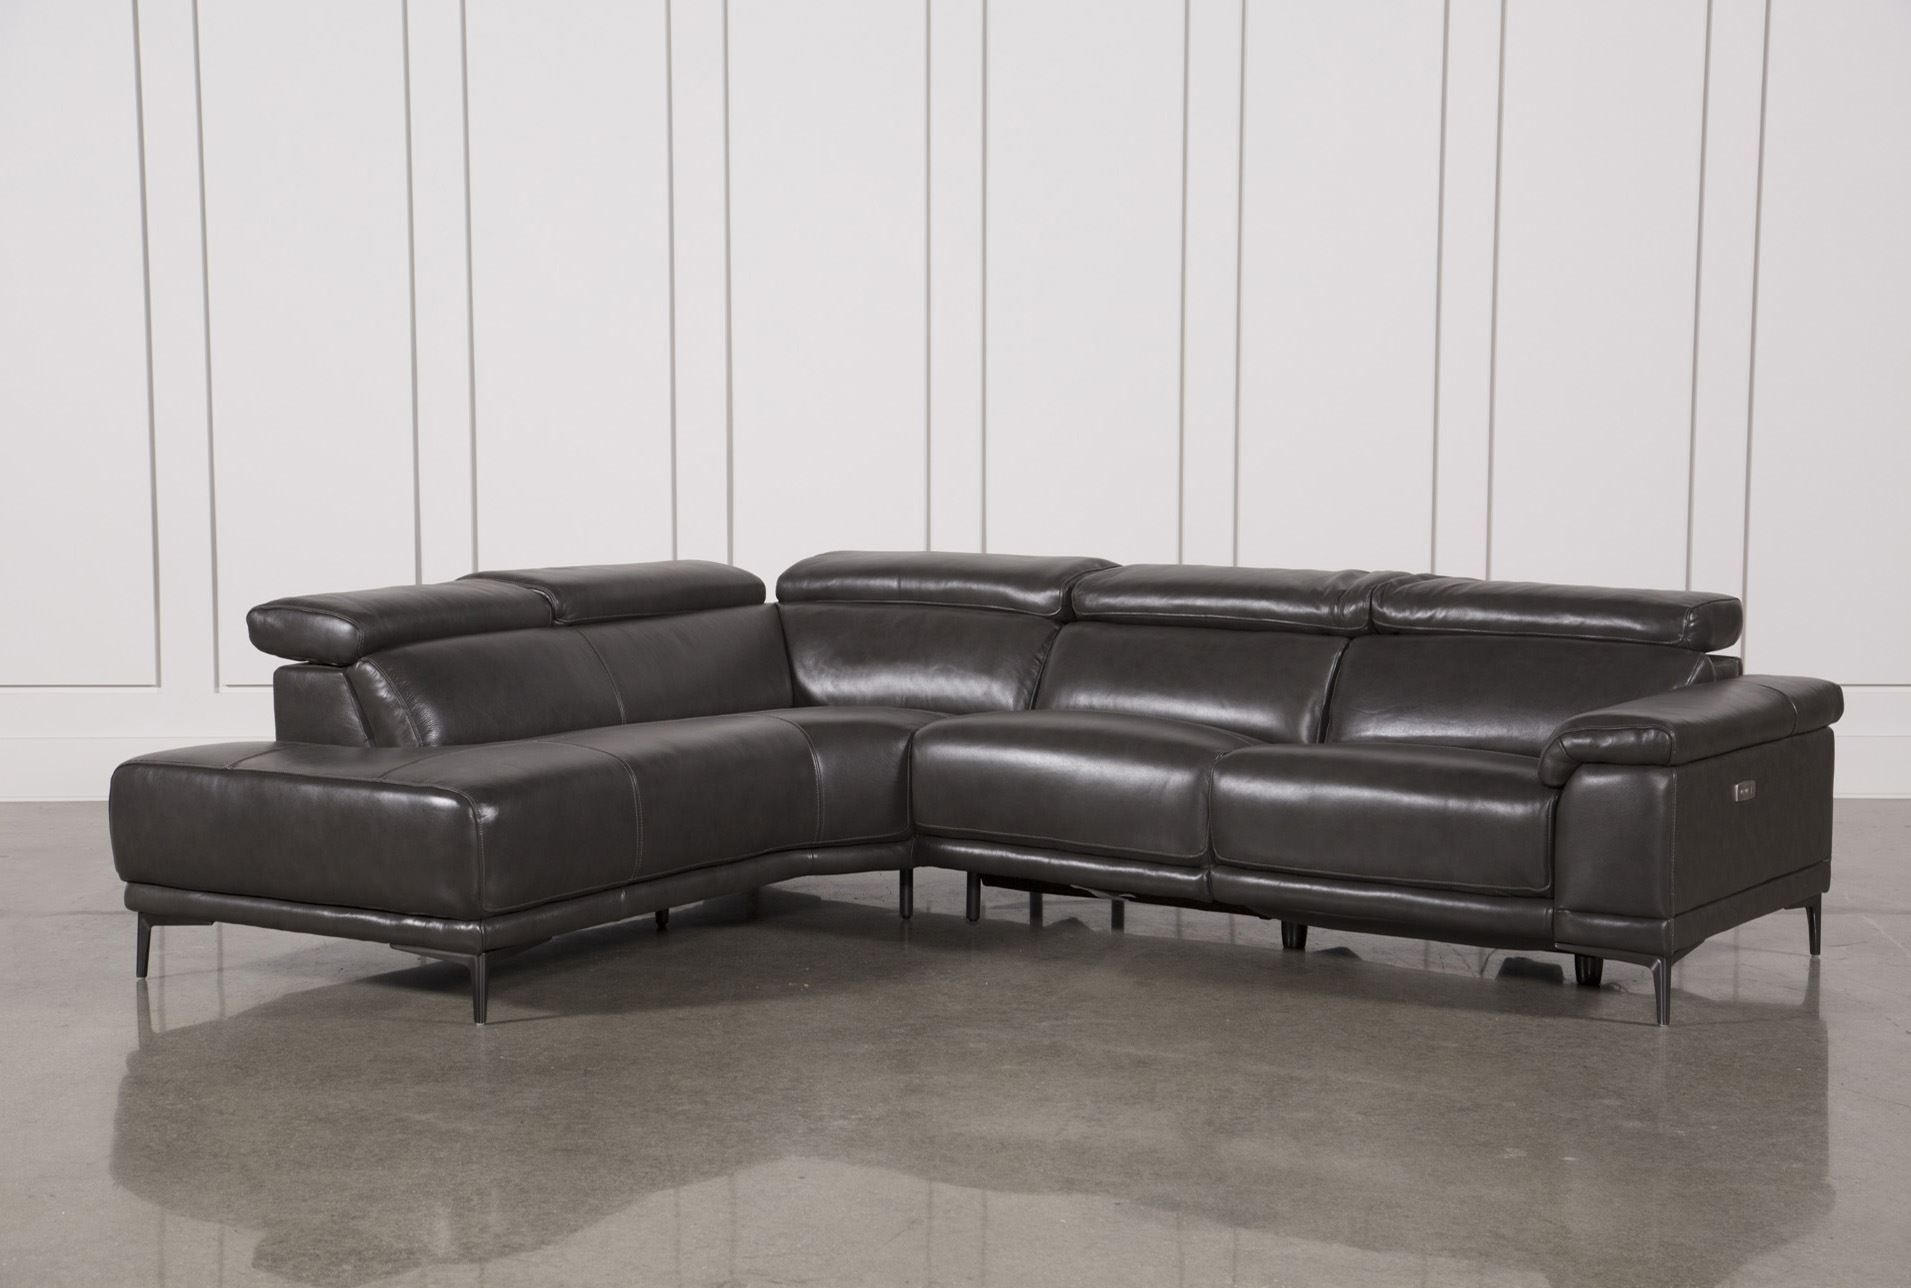 Tatum Dark Grey 2 Piece Sectional W/laf Chaise | Living Room within Turdur 2 Piece Sectionals With Laf Loveseat (Image 28 of 30)